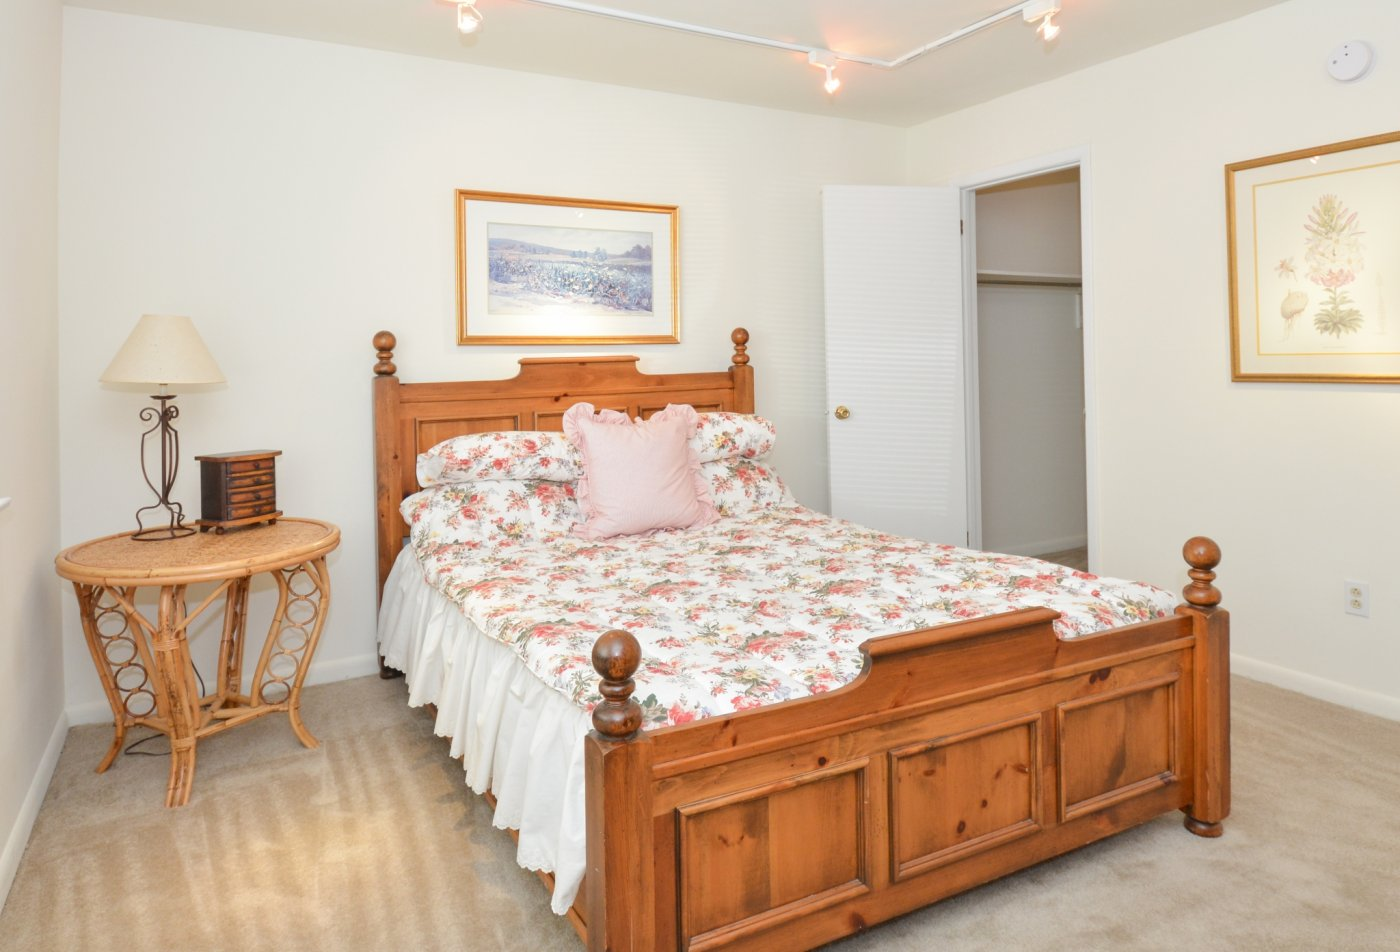 Spacious Master Bedroom   Apartments Homes for rent in Newark, DE   OakTree Apartments